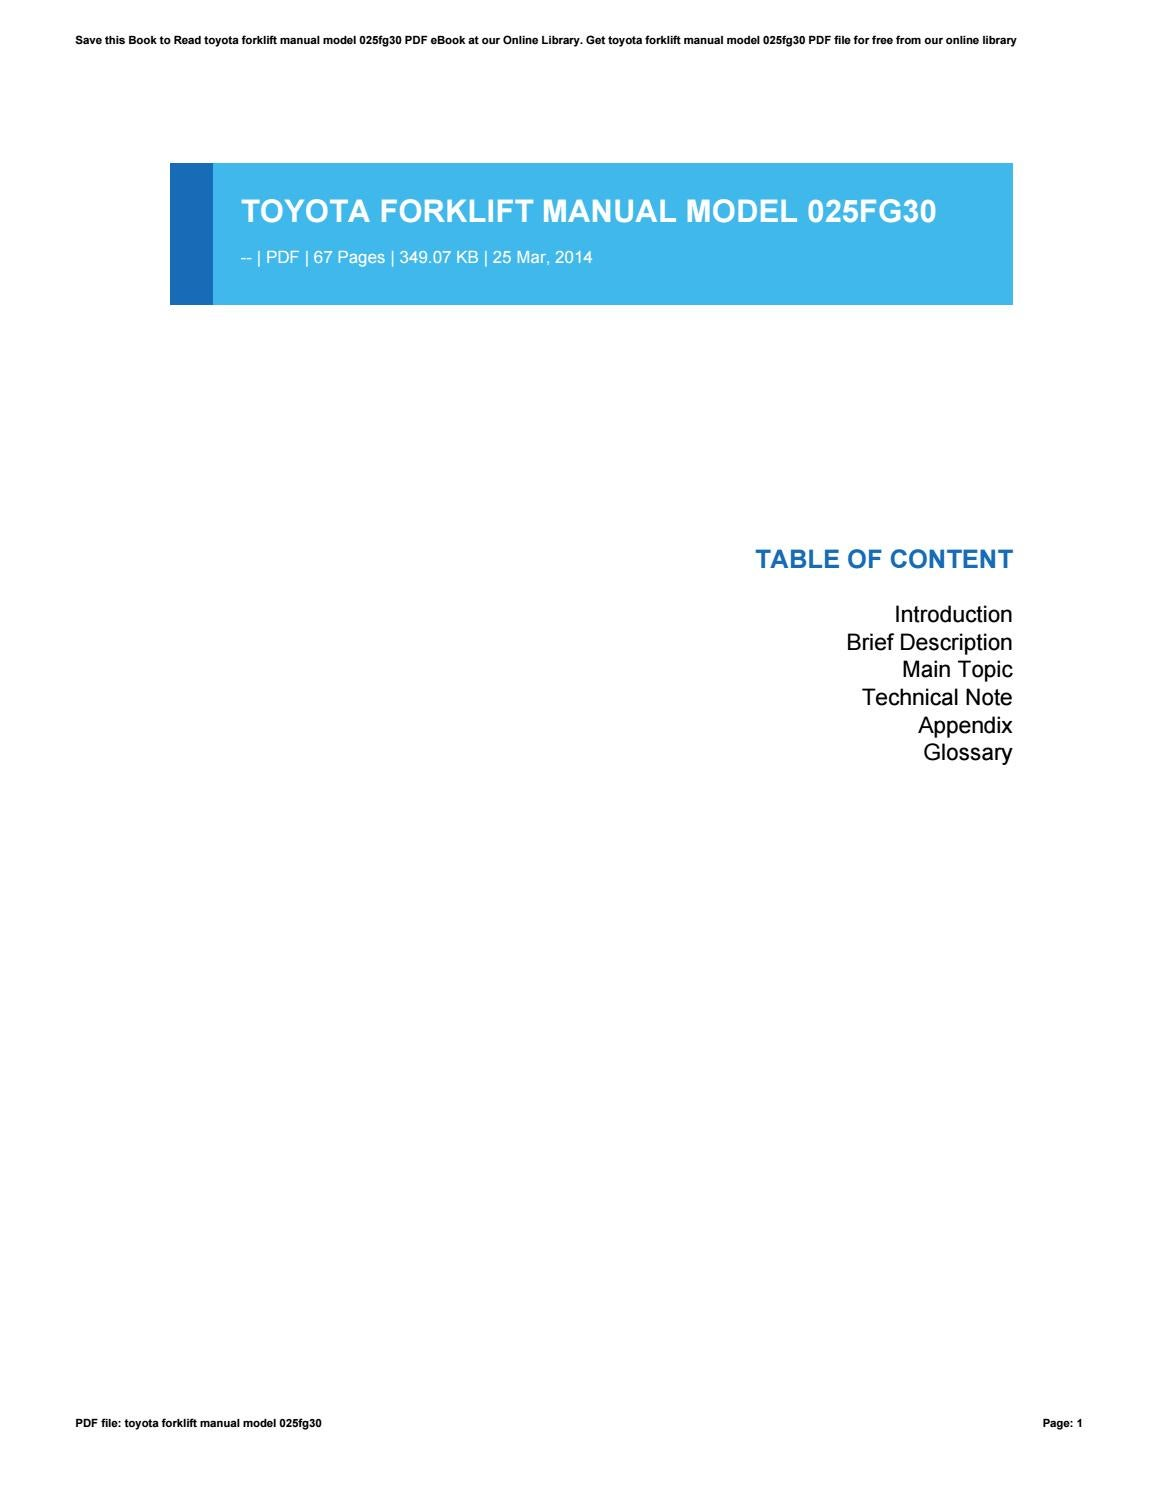 hight resolution of toyota forklift manual model 025fg30 by morriesworld81 issuu toyota forklift wiring diagram